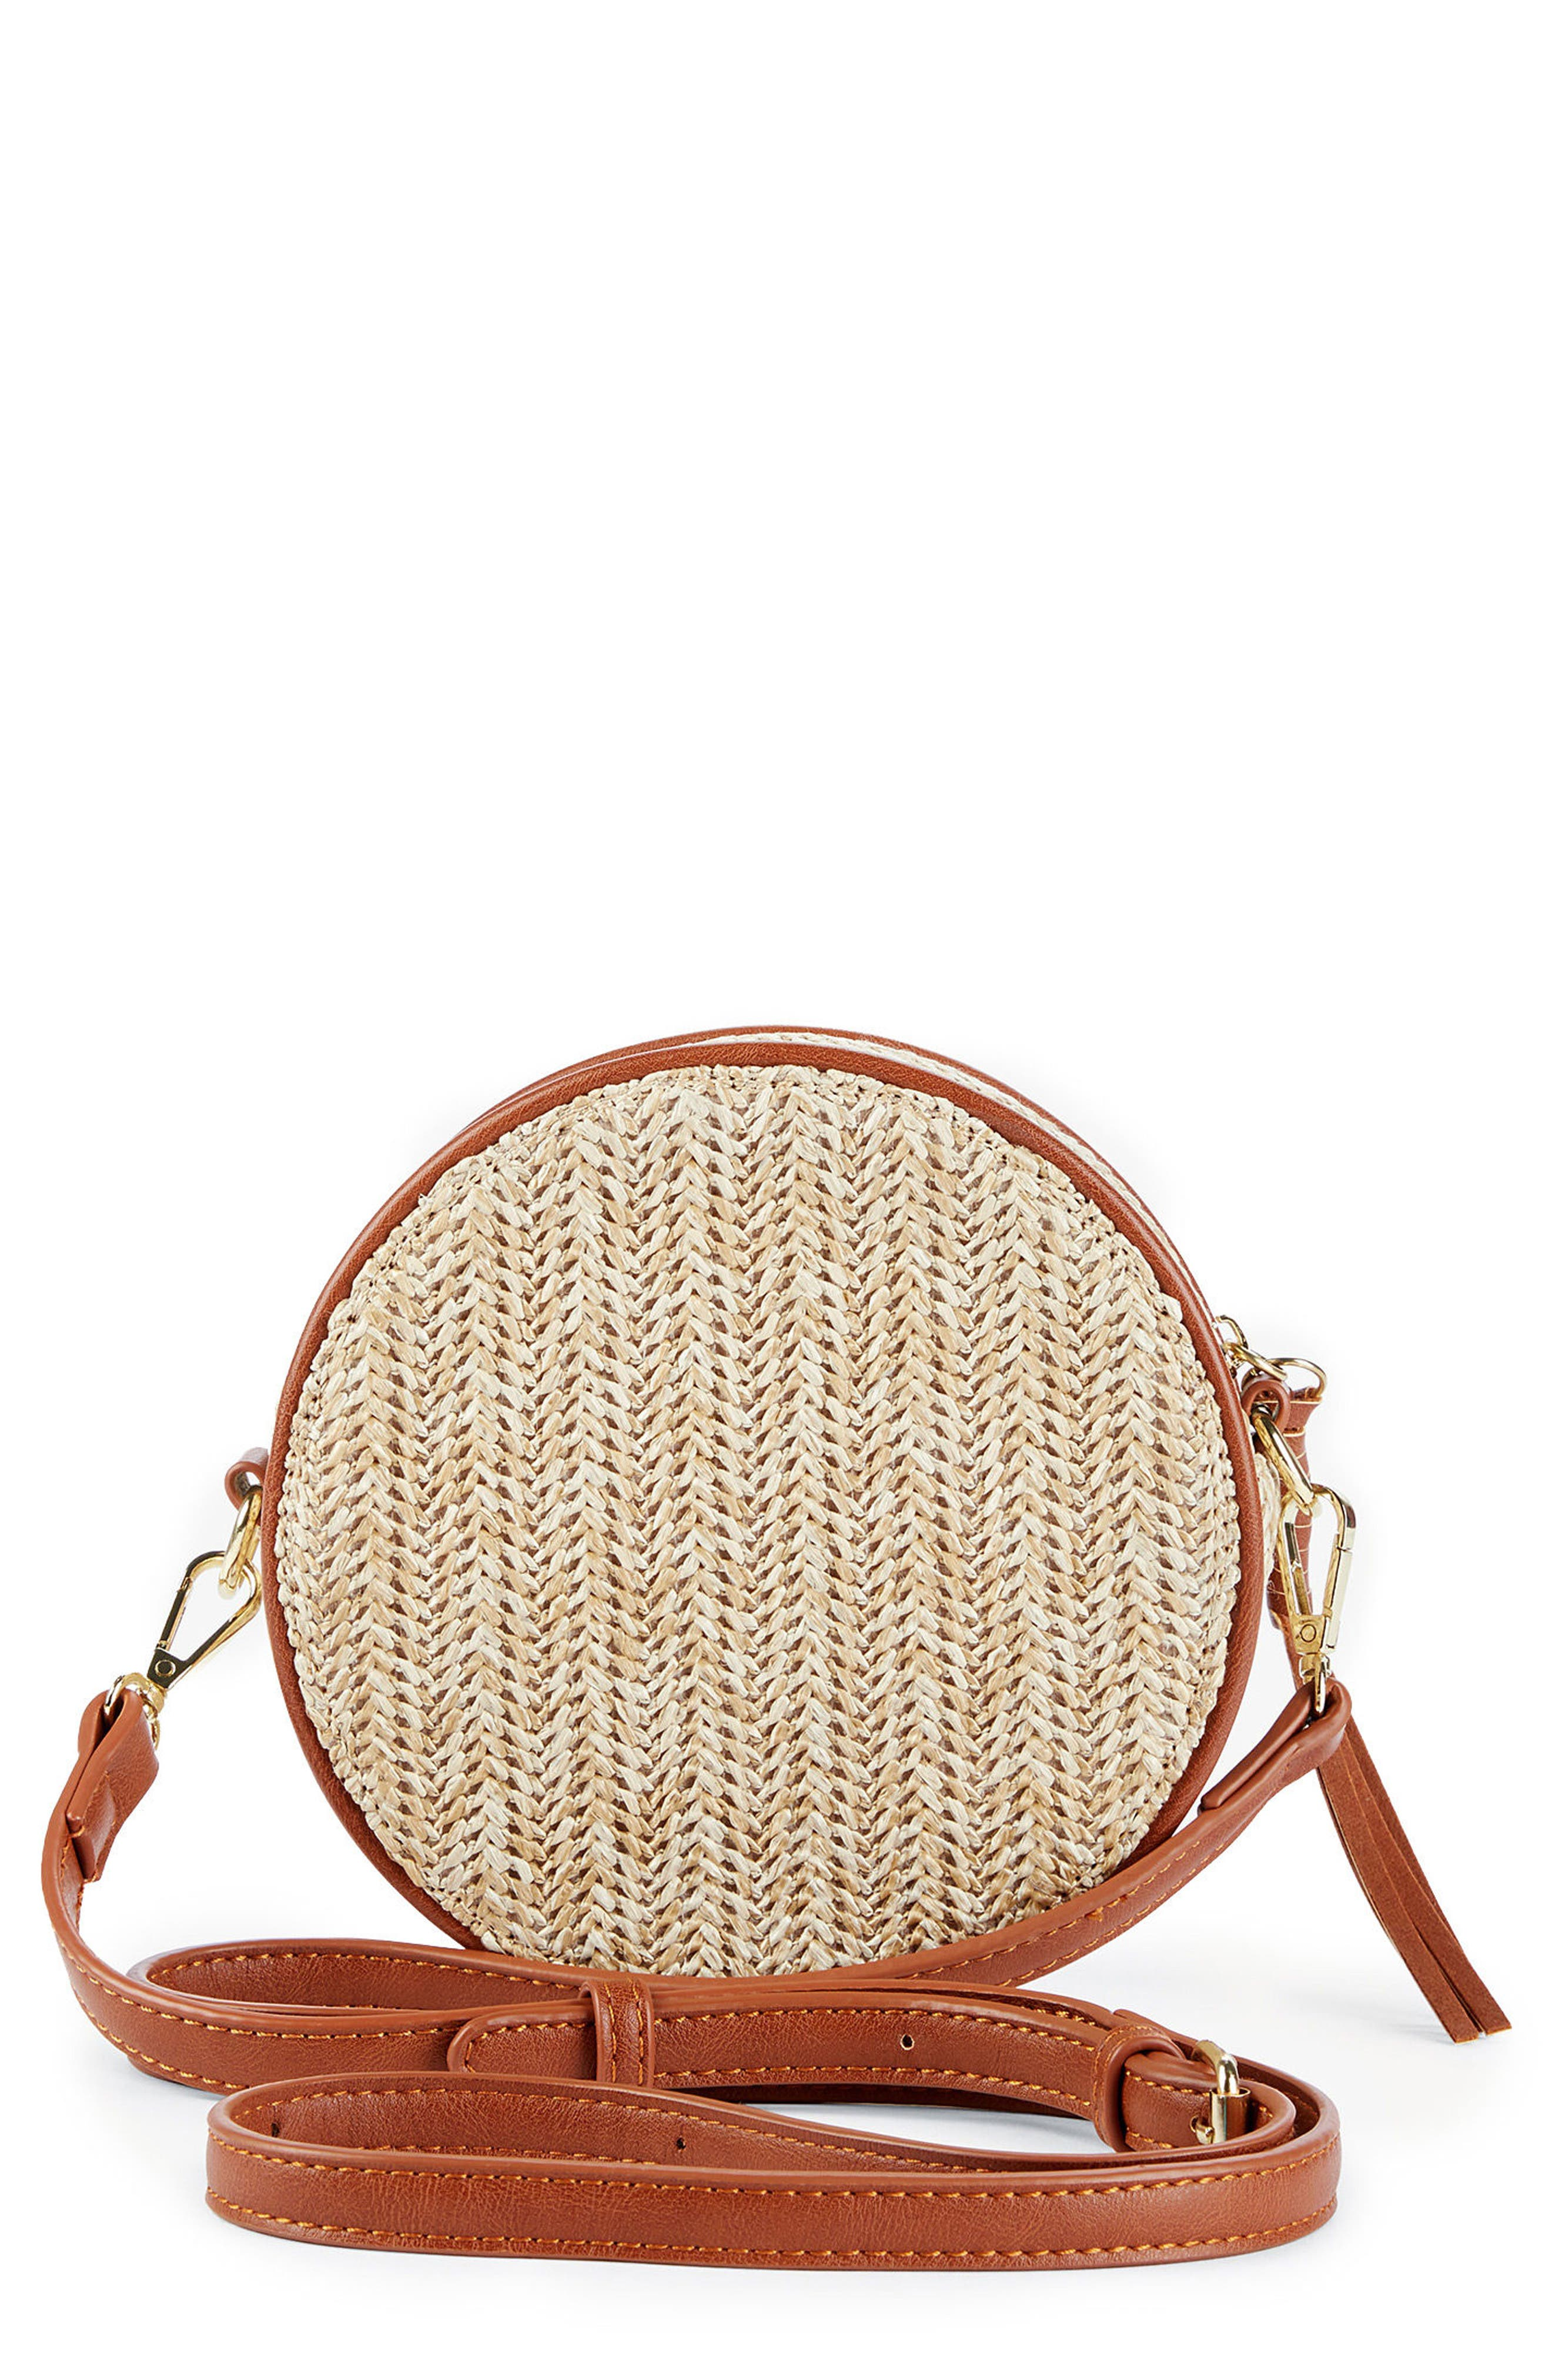 Pipper Small Faux Leather Crossbody Bag,                             Main thumbnail 1, color,                             250